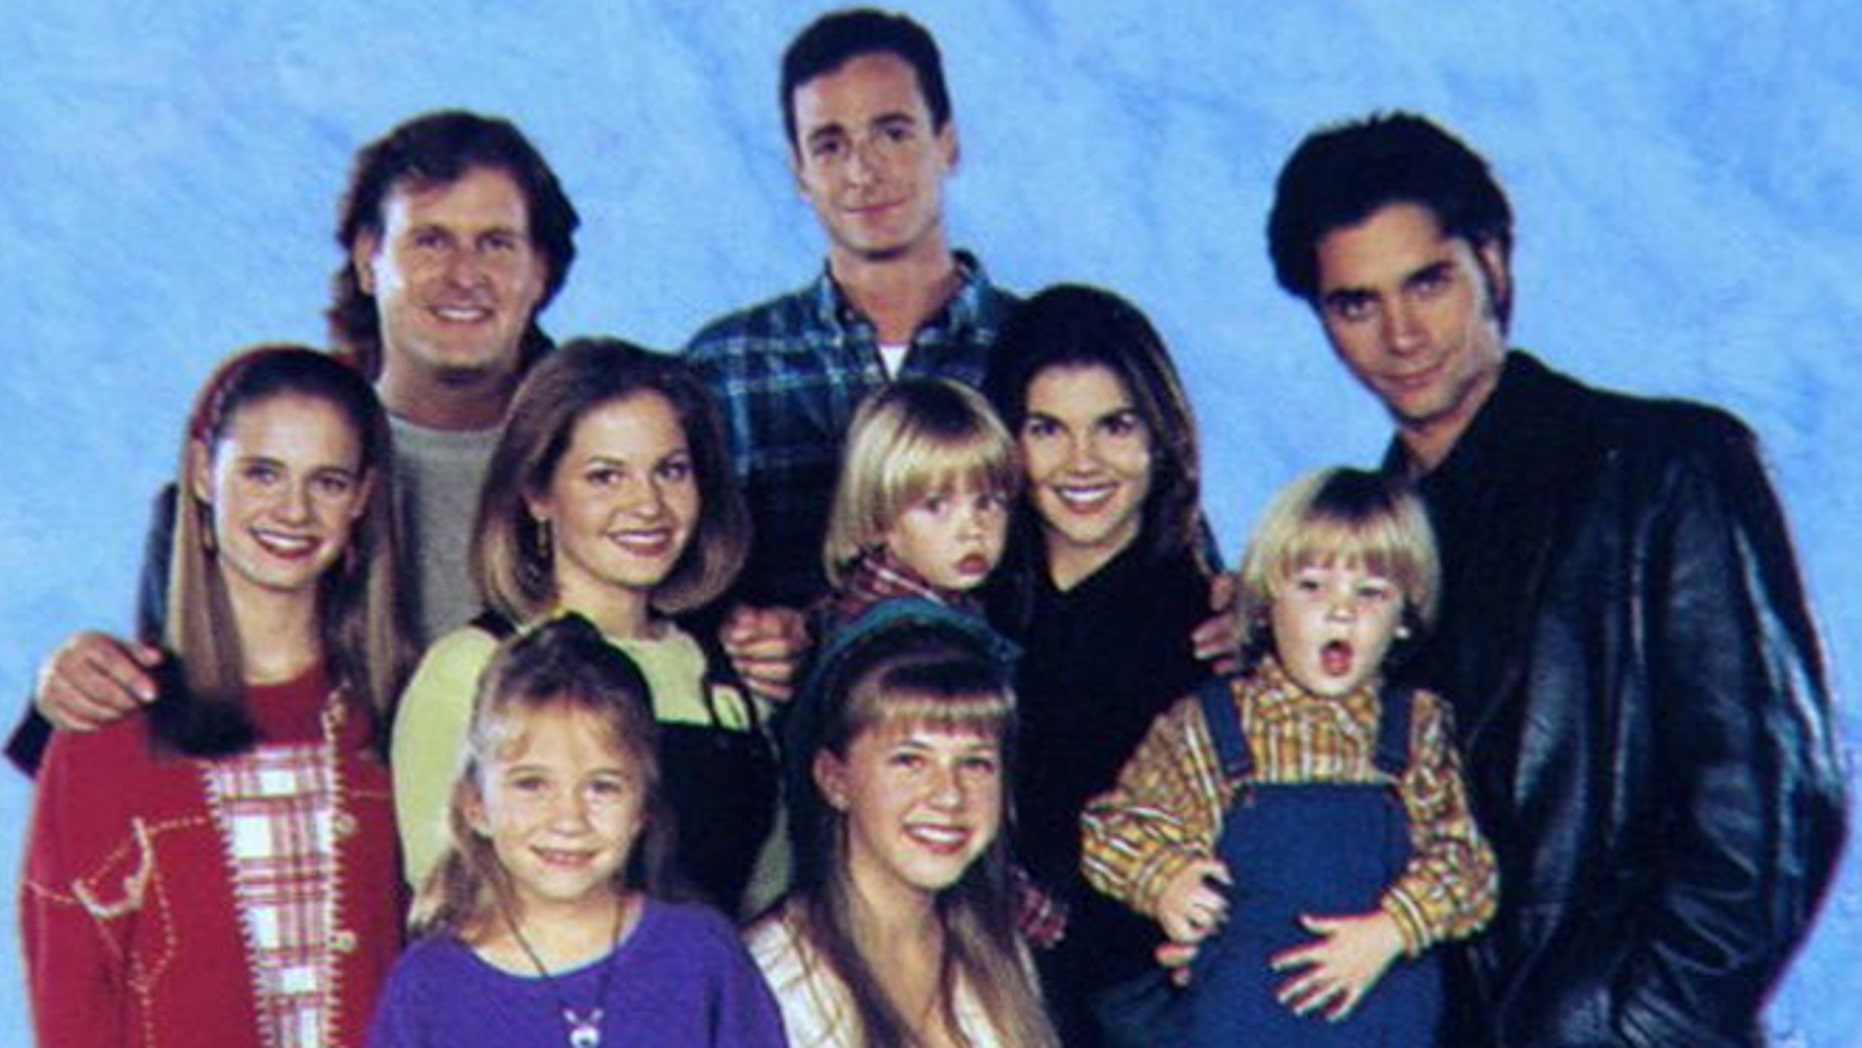 """""""Full House"""" cast: (front) Ashley Olsen, Jodie Sweetin, (mid) Andrea Barber, Candice Cameron, Blake Tuomy-Wilhoit, Lori Loughline, Dylan Tuomy-Wilhoit, (back) Dave Coulier, Bob Saget and John Stamos."""